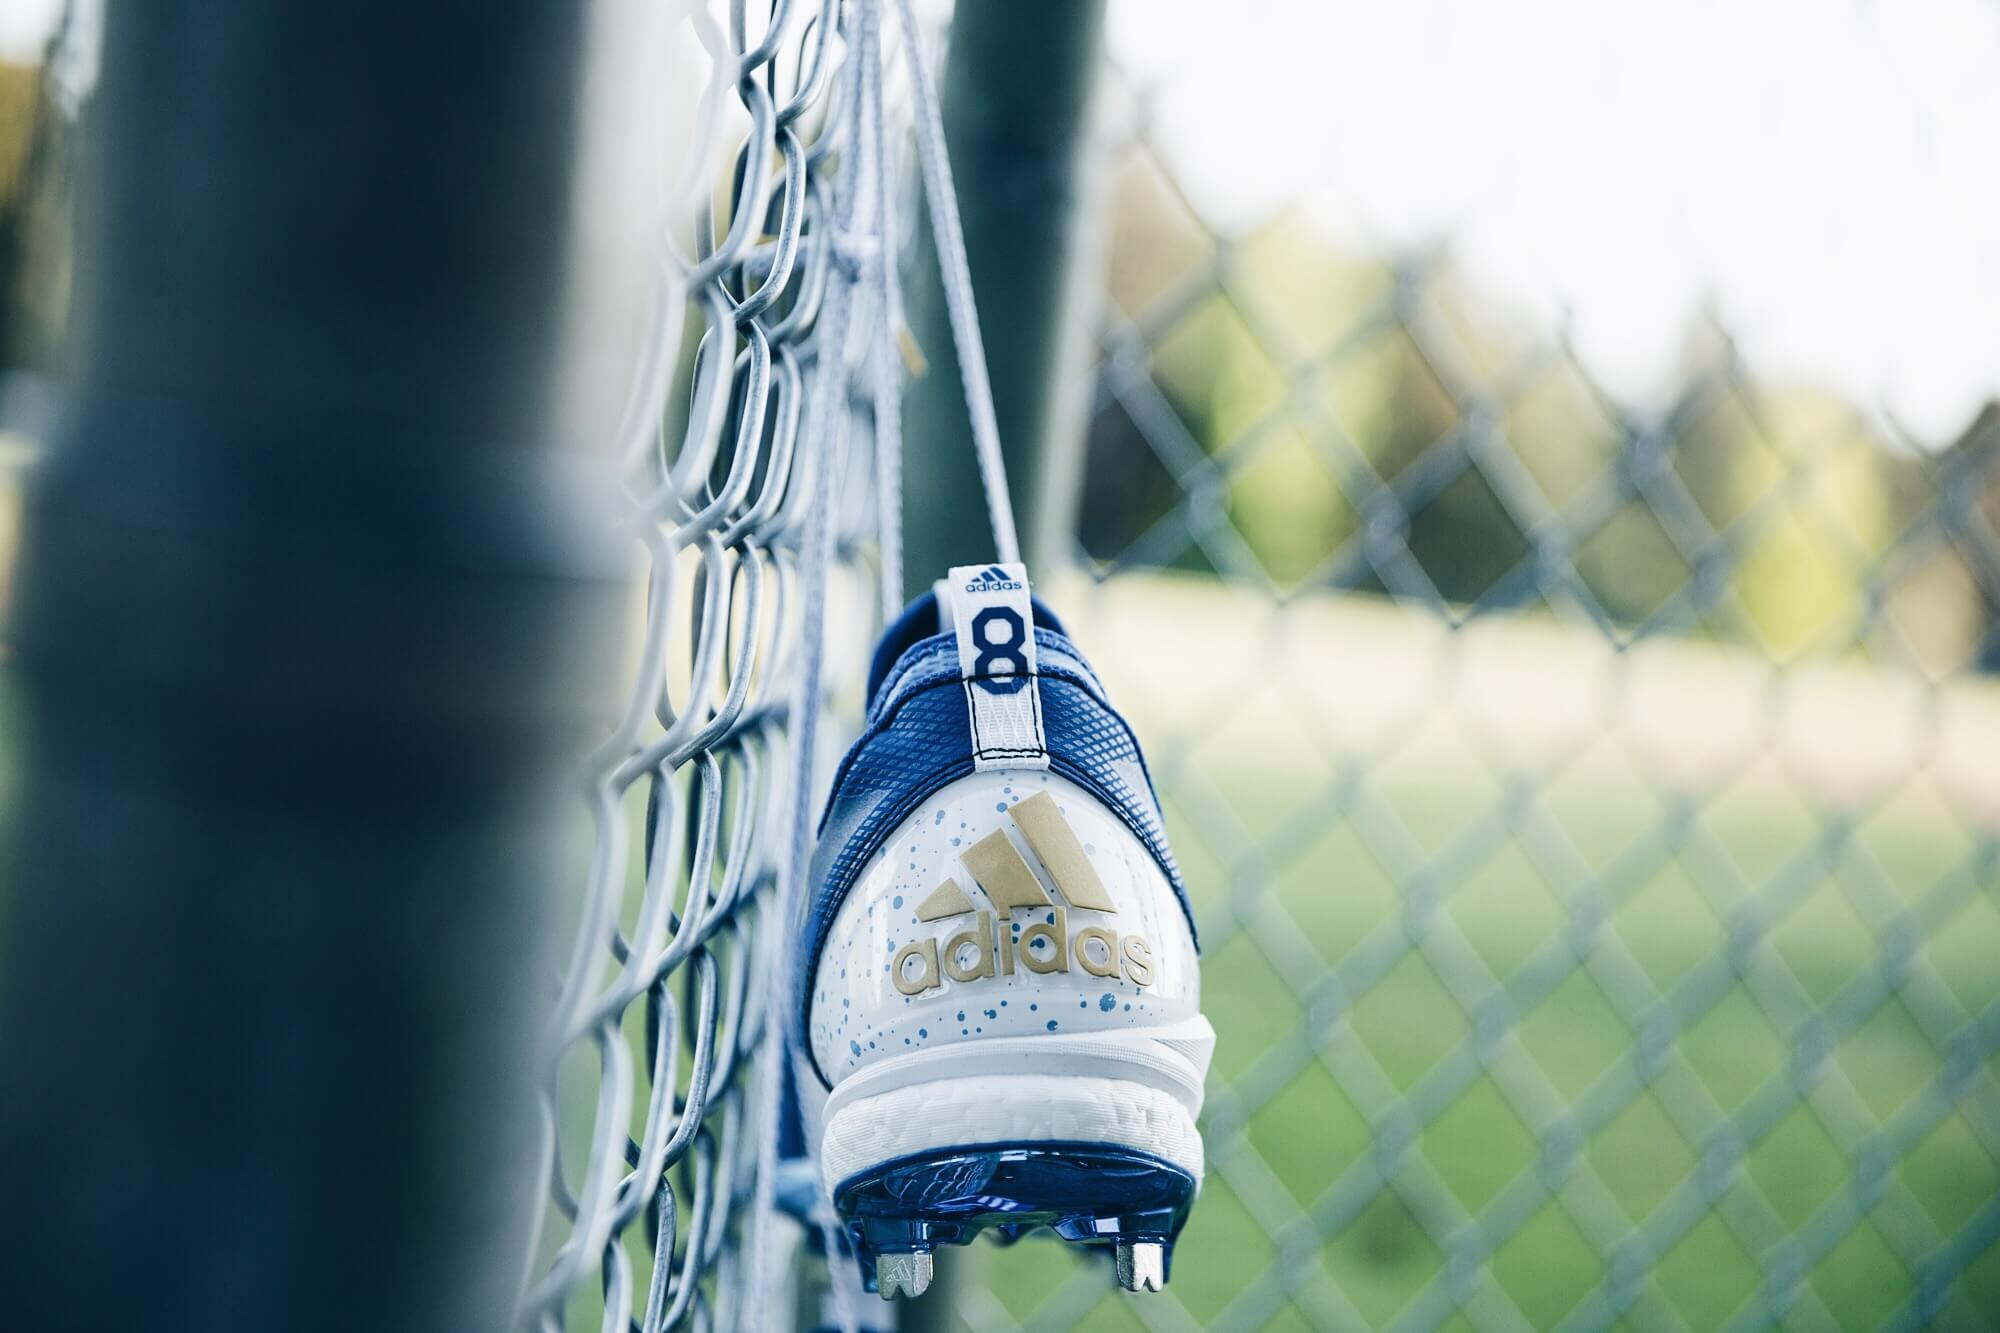 Mike Moustakas adidas Cleats 2